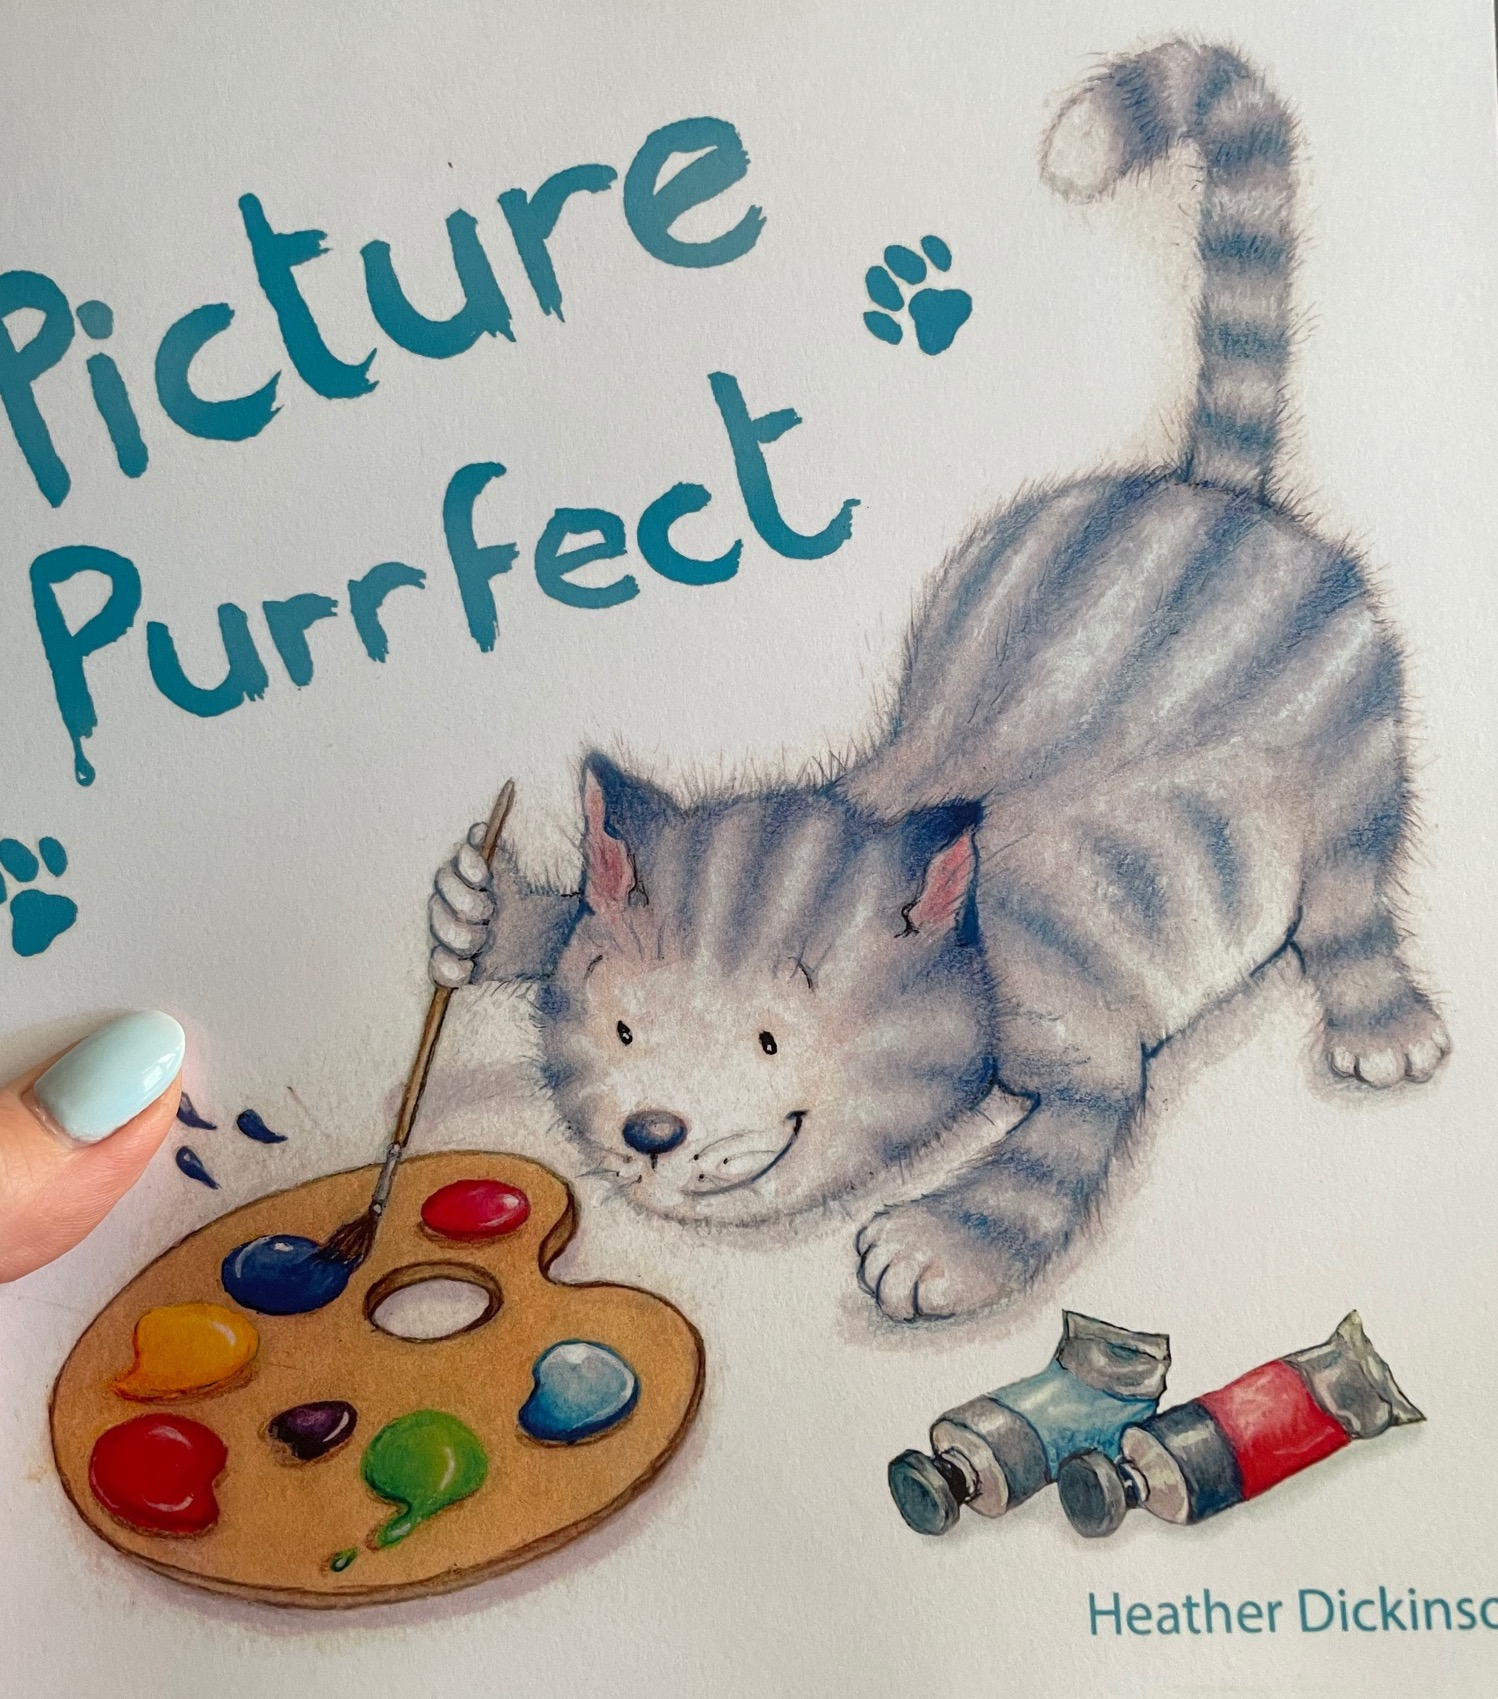 'Picture Purrfect' by Heather Dickinson